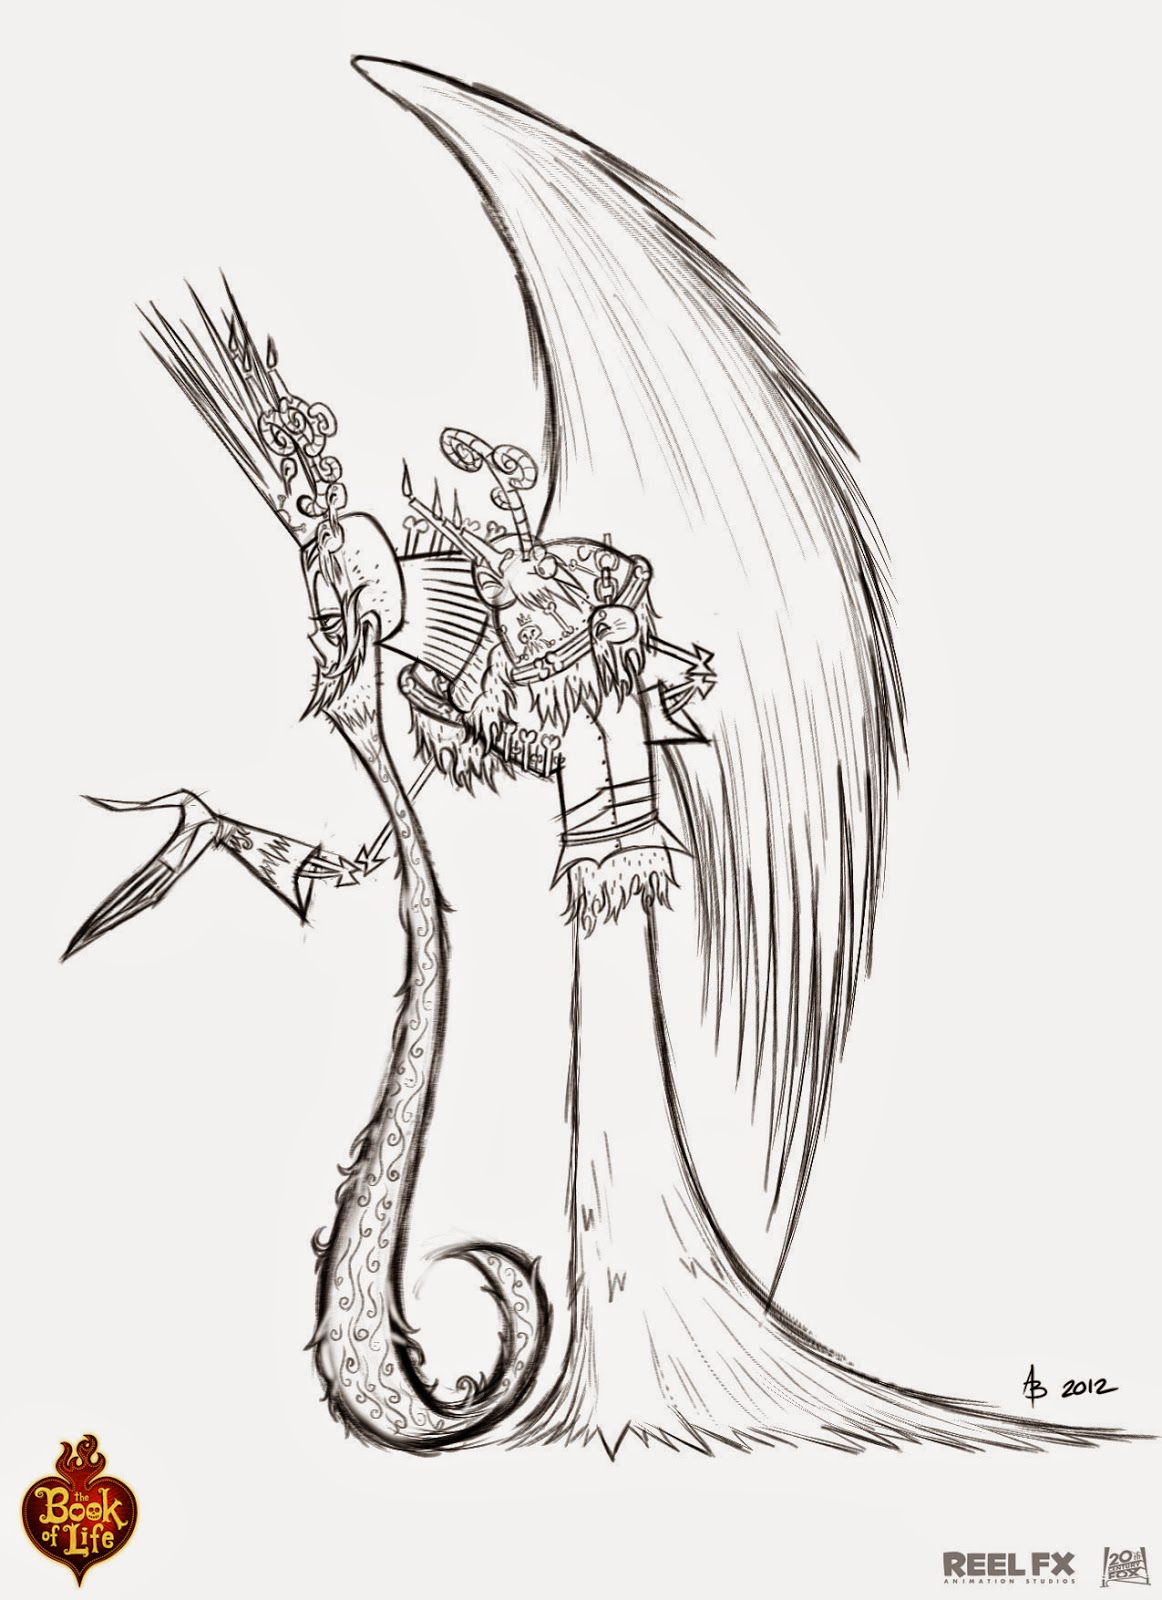 Character Design Book Of Life : Andy bialk quot the book of life xibalba character poses